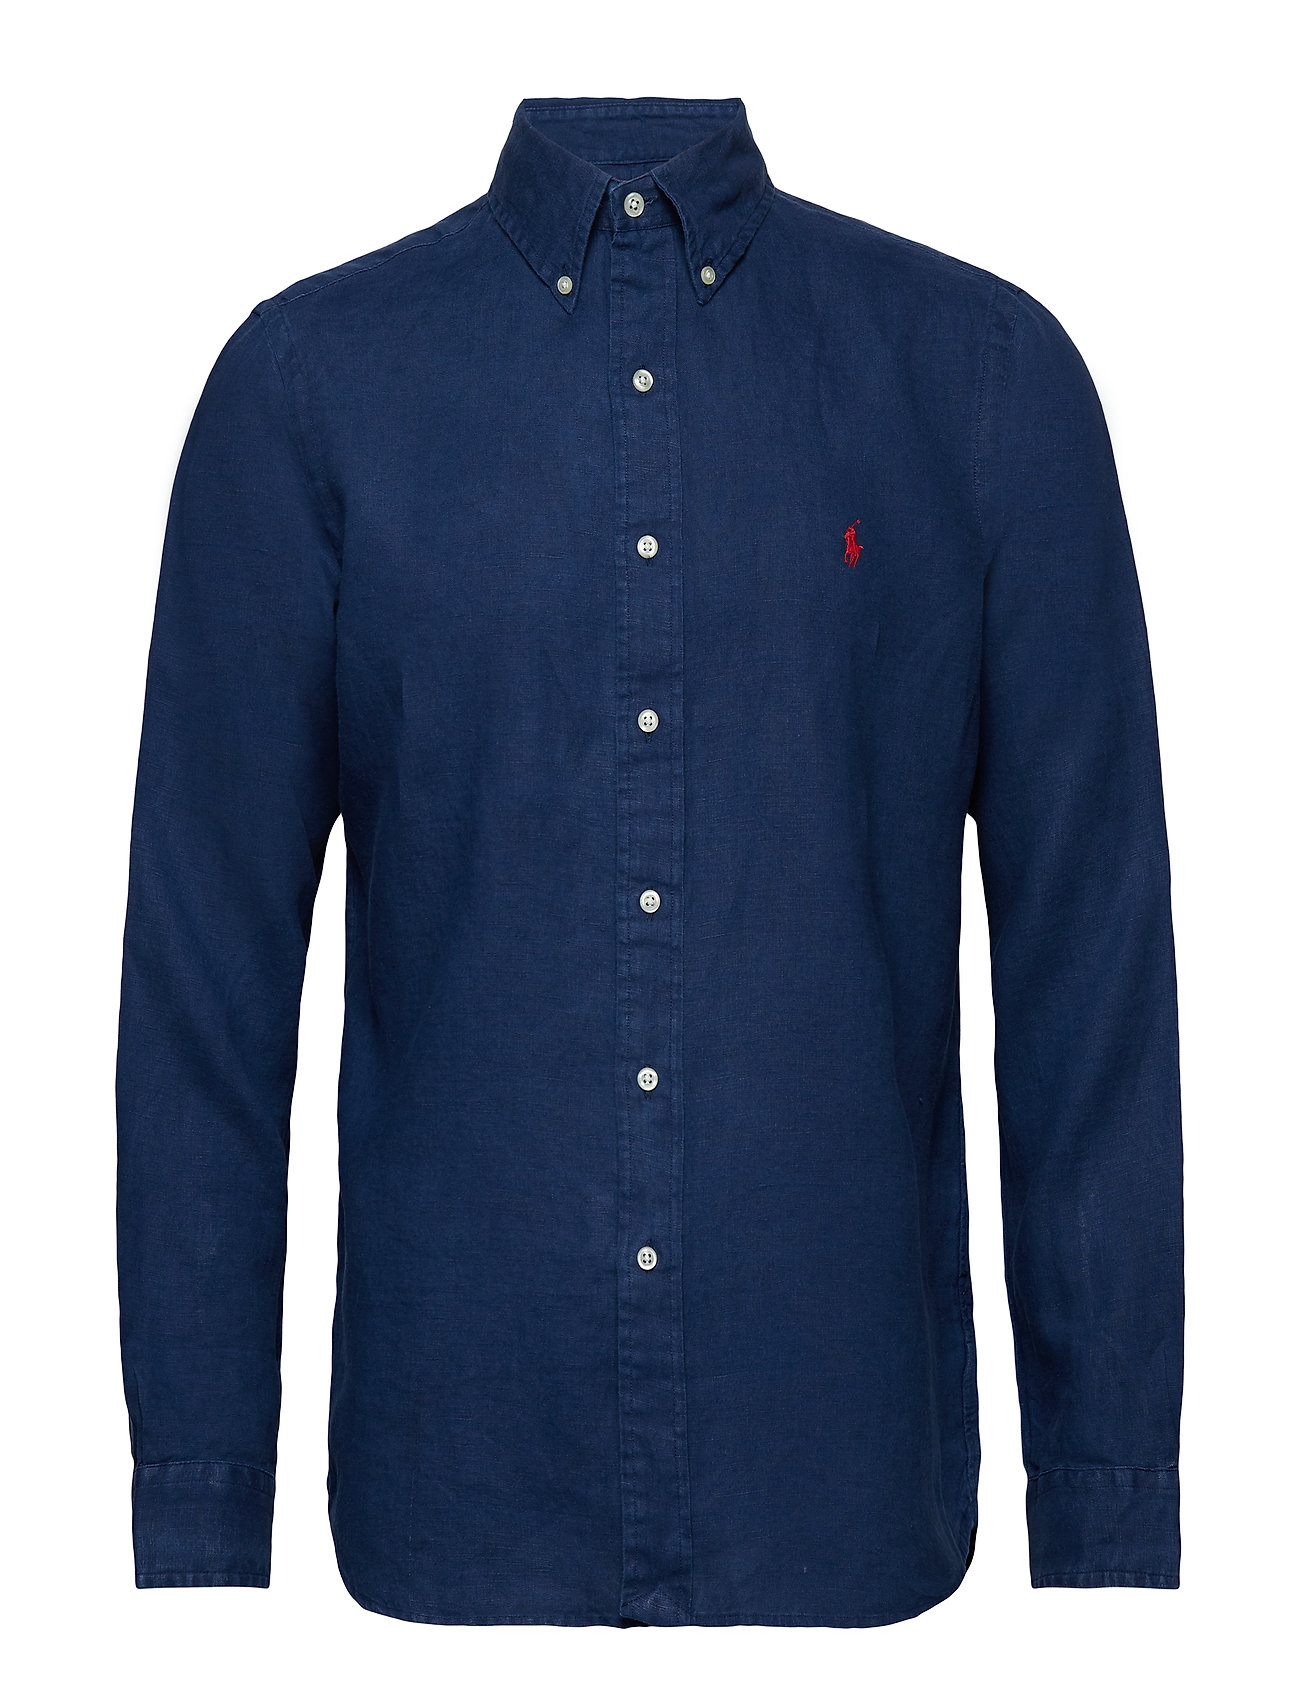 Polo Ralph Lauren BD PPC SPT-LONG SLEEVE-SPORT SHIRT - HOLIDAY NAVY